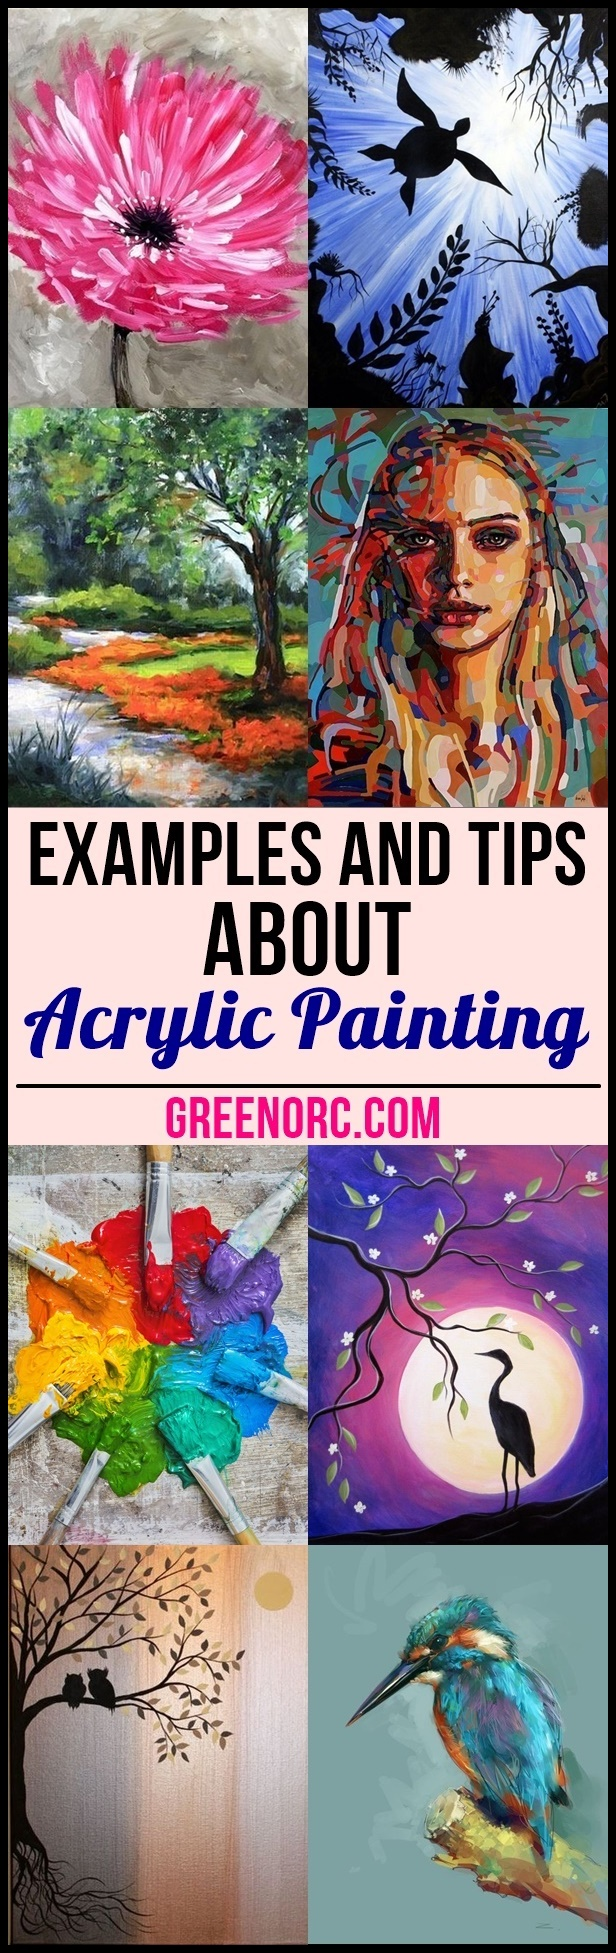 Examples and Tips About Acrylic Painting